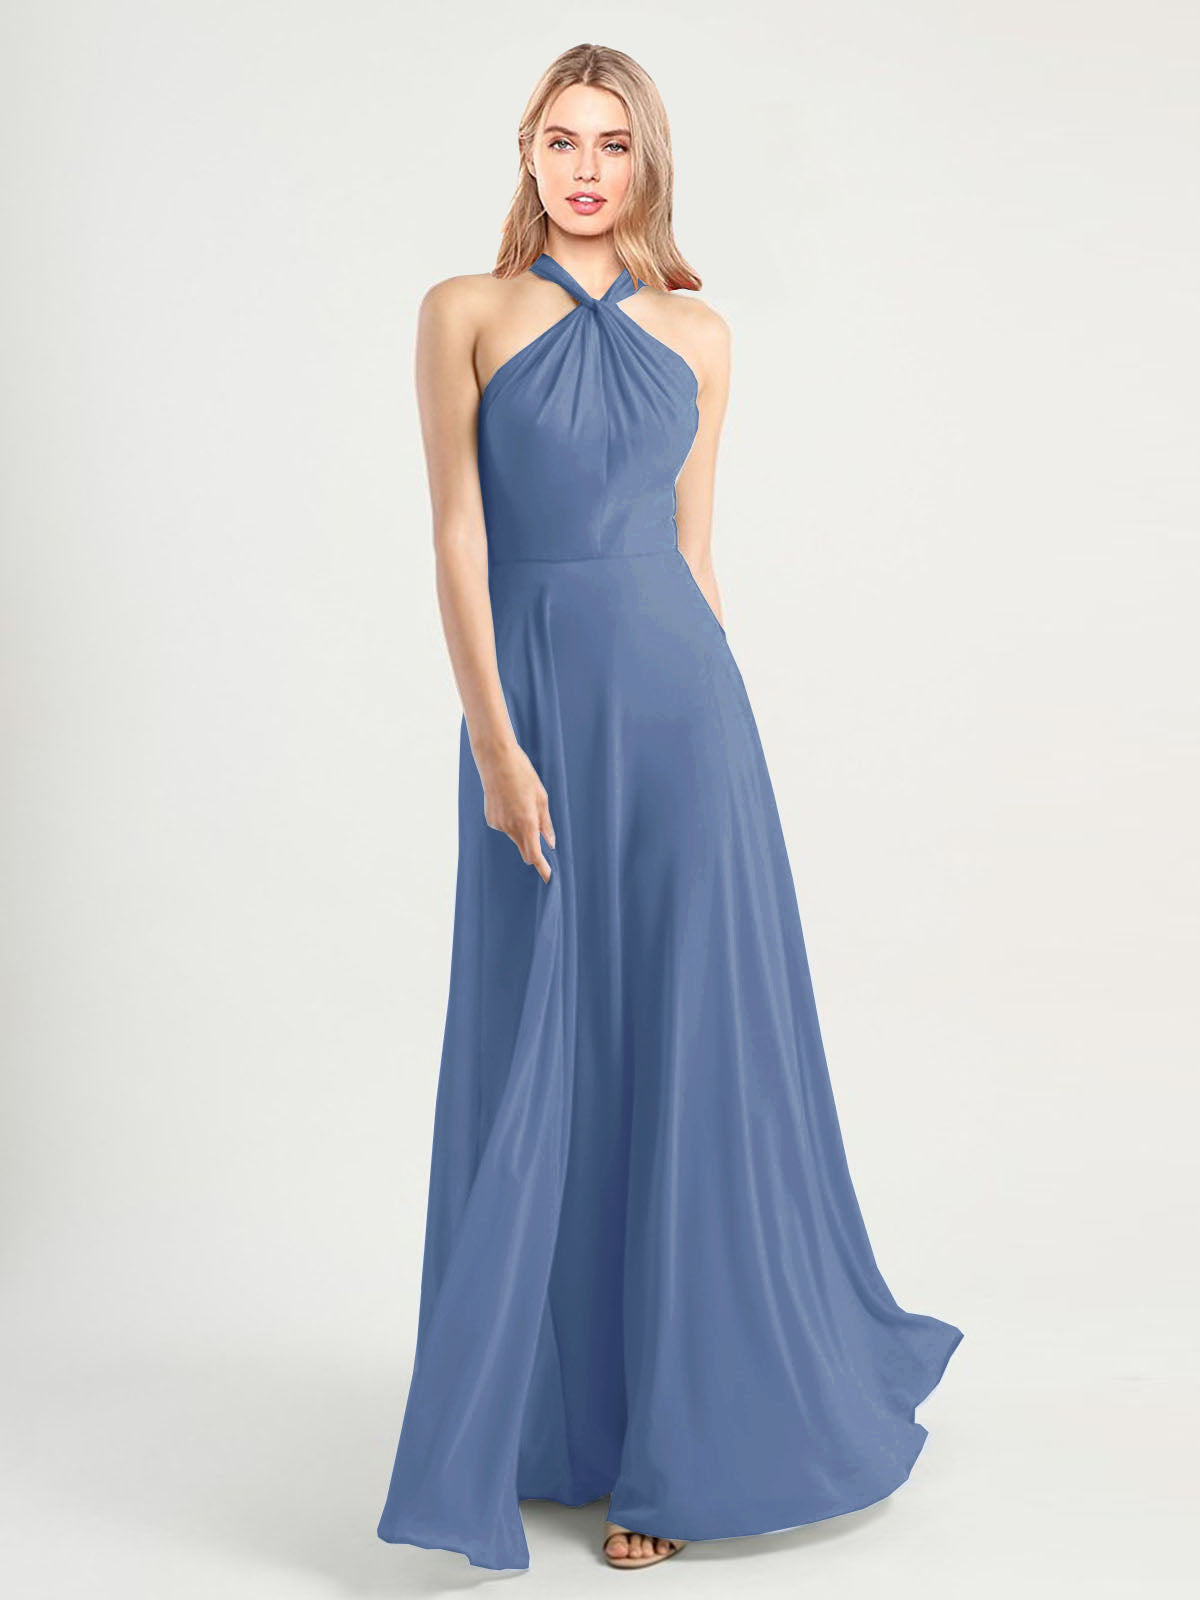 Long A-Line High Neck, Halter Sleeveless Windsor Blue Chiffon Bridesmaid Dress Yoli